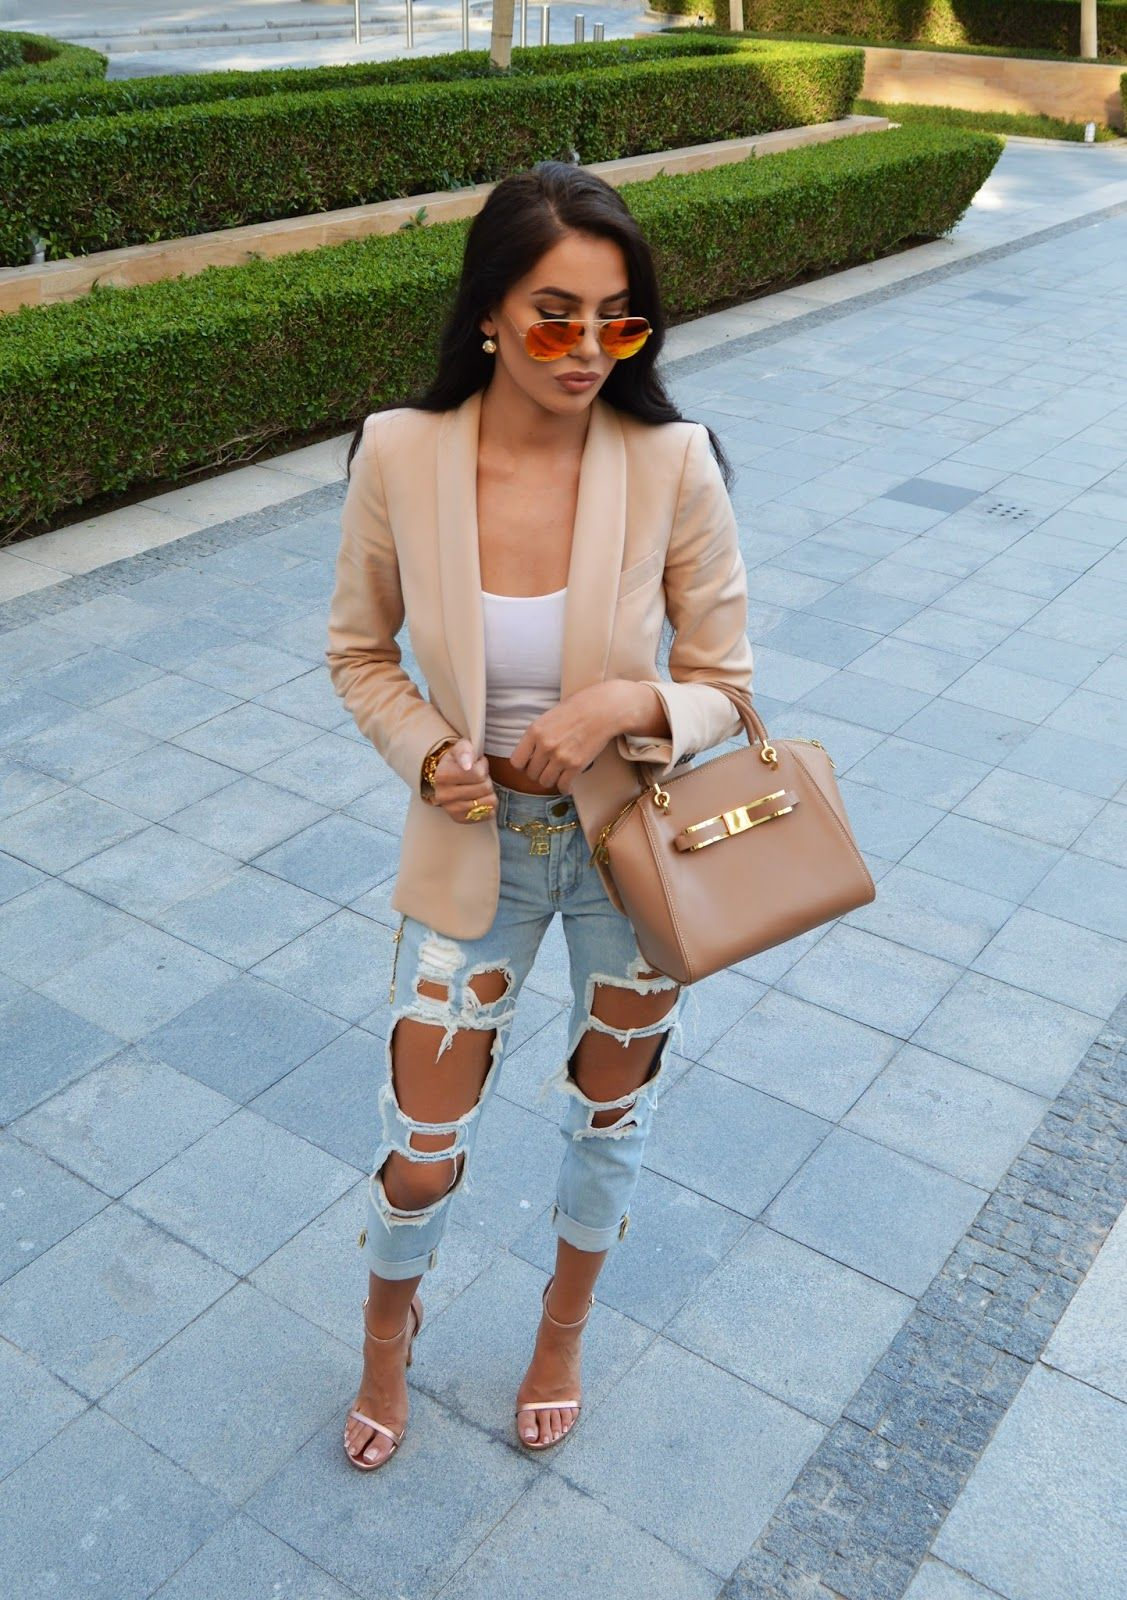 Wanna See More Follow Me Pinterest Theylovecyn Cute Outfits Pinterest Clothes